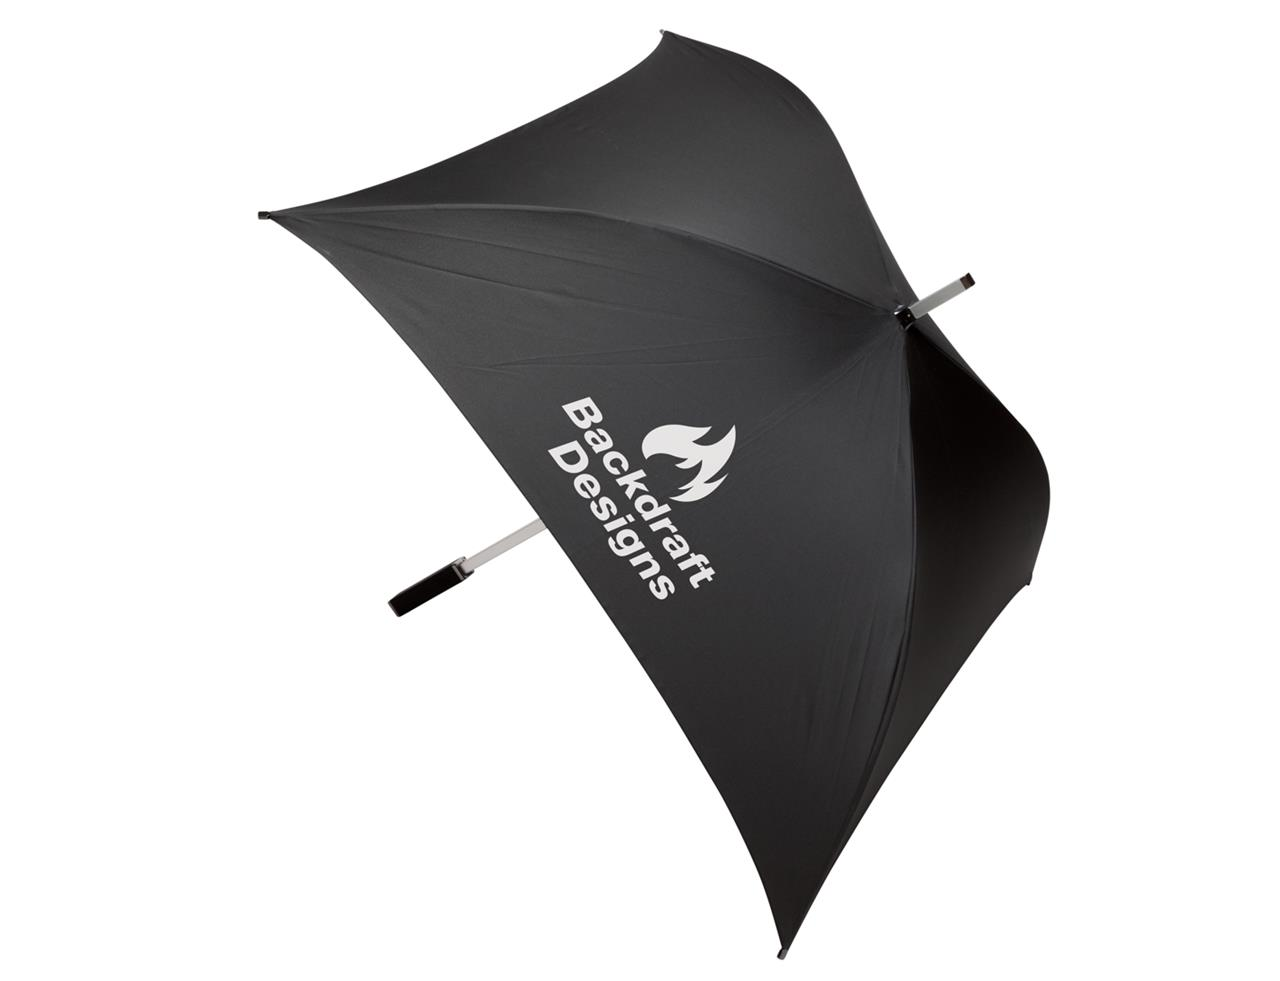 the premier collection soho square umbrella black - soho square umbrella black